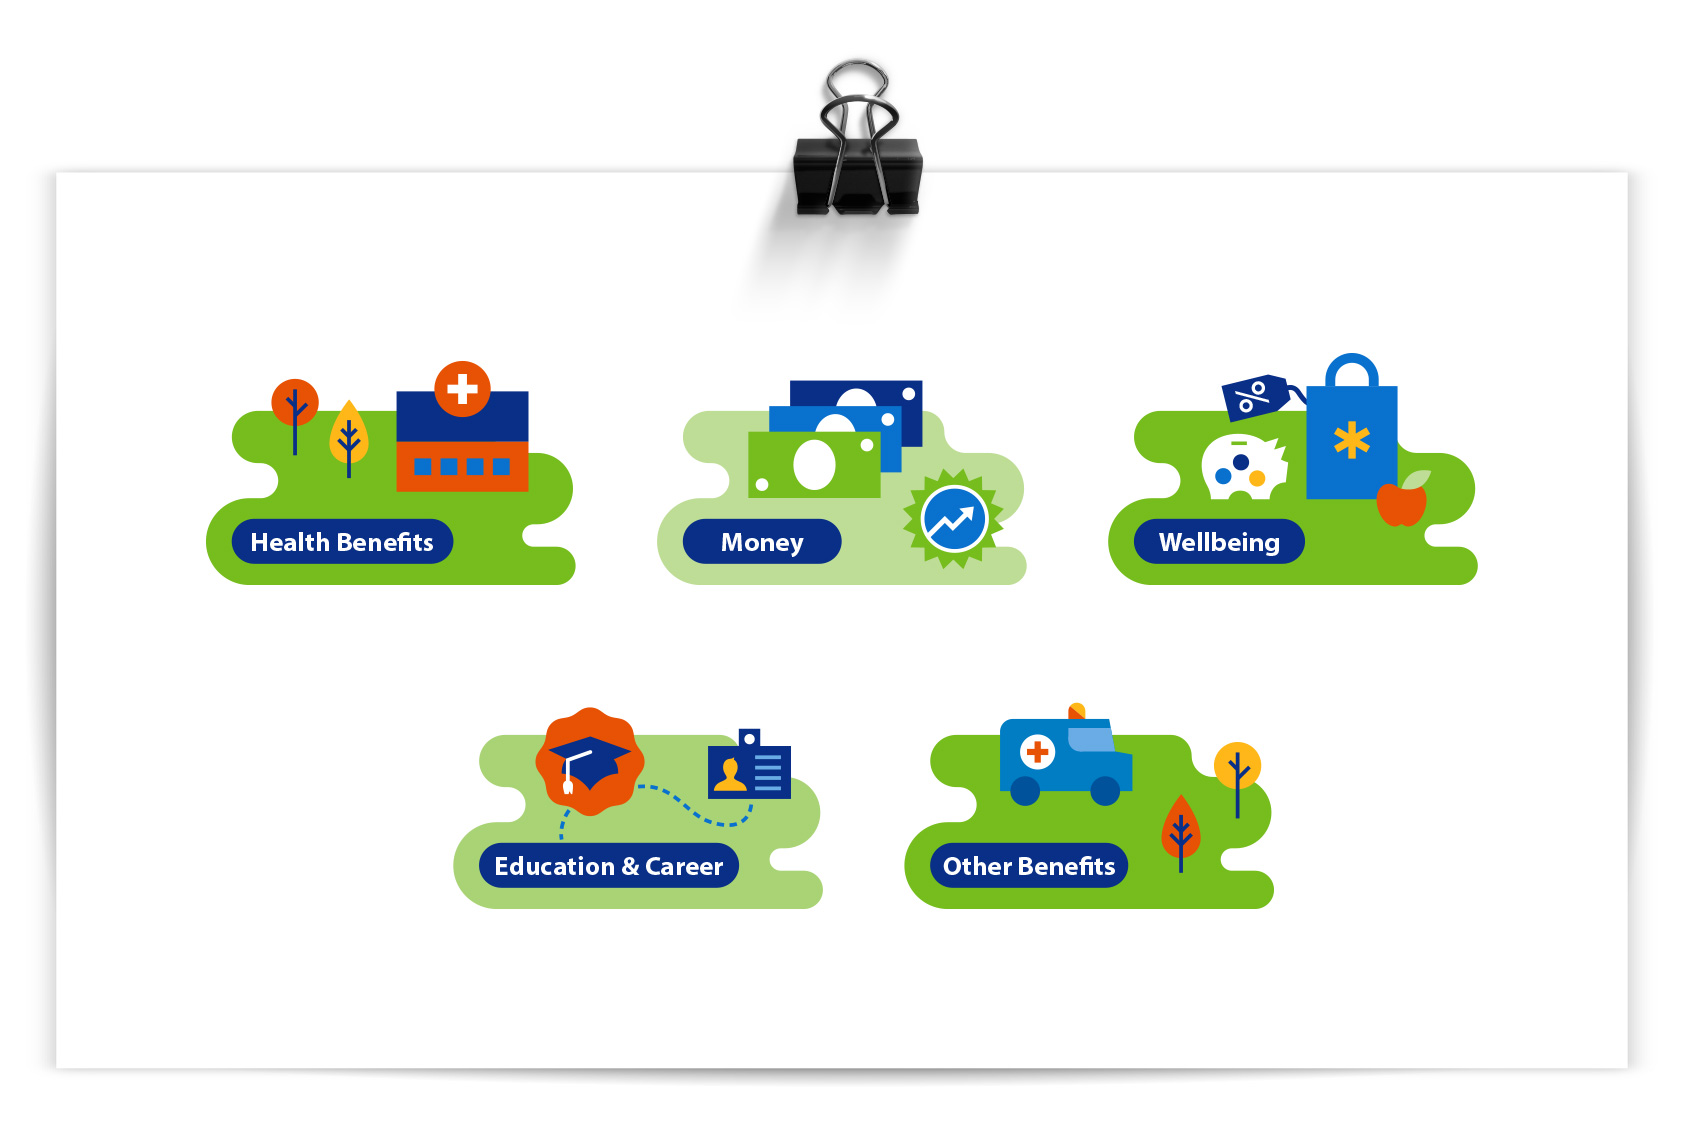 category divider icons for Walmart annual enrollment materials